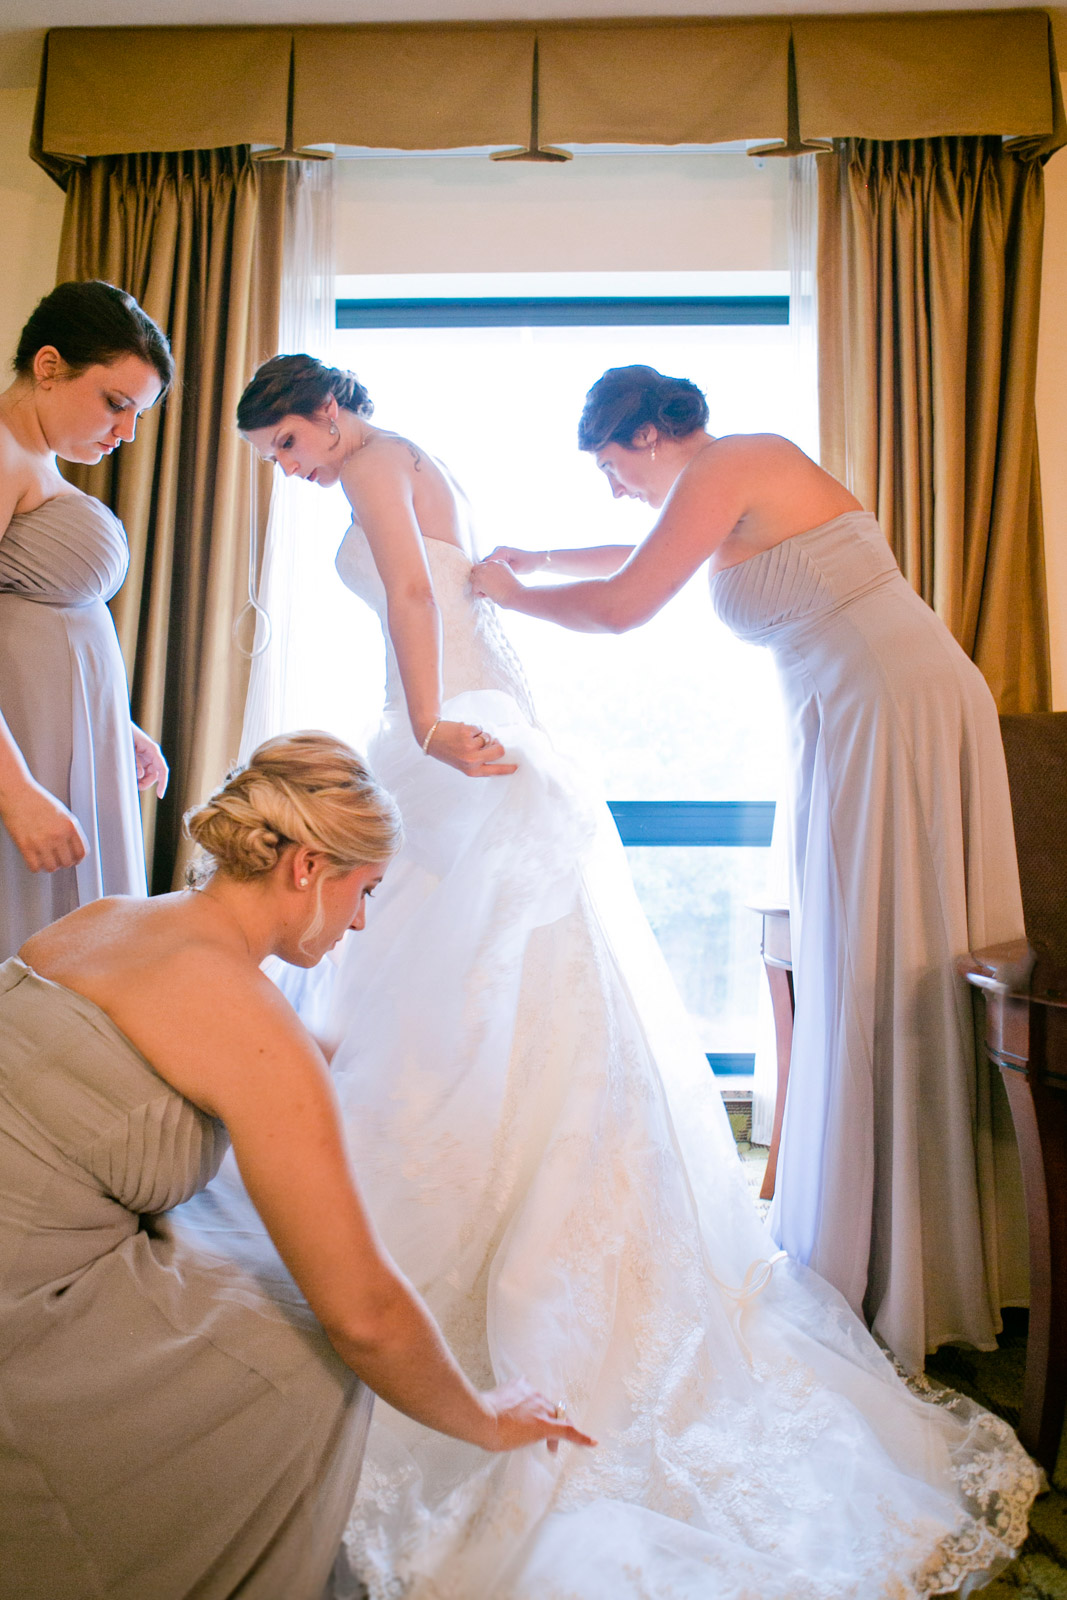 the bridesmaids surround the bride to assist her with her wedding dress before the wedding